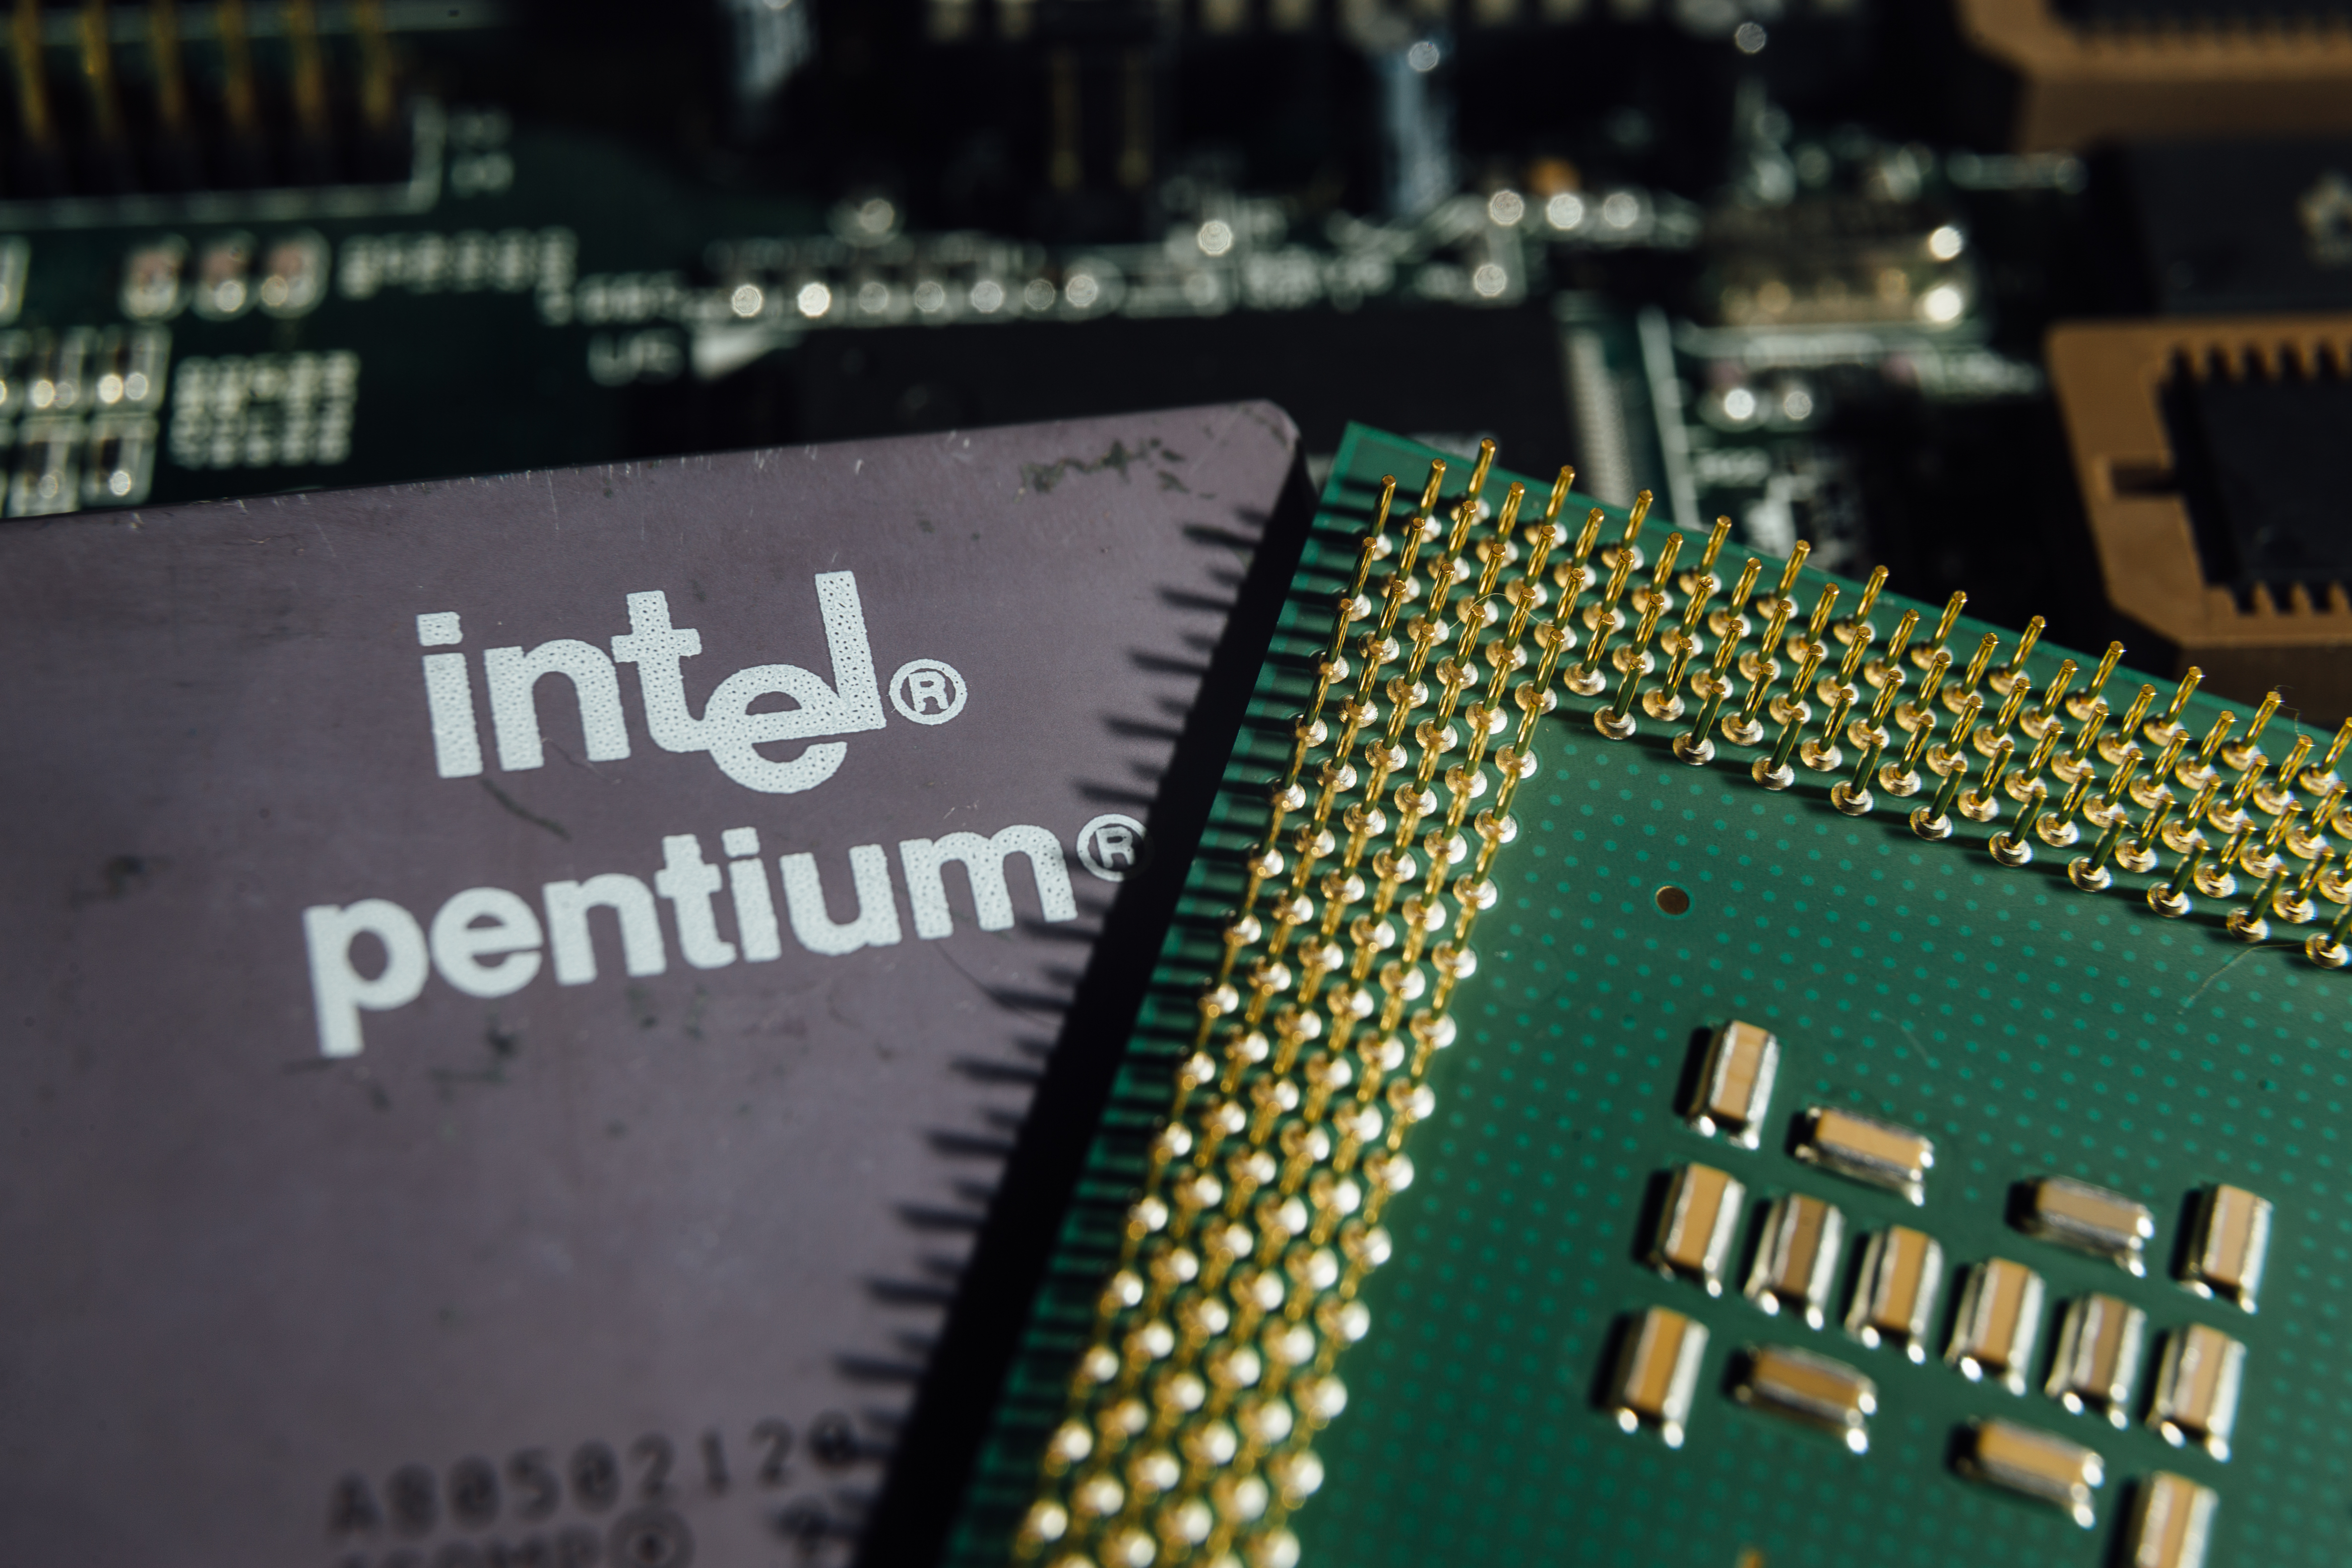 An Intel Pentium chip after the company revealed information about a major security flaw in it.